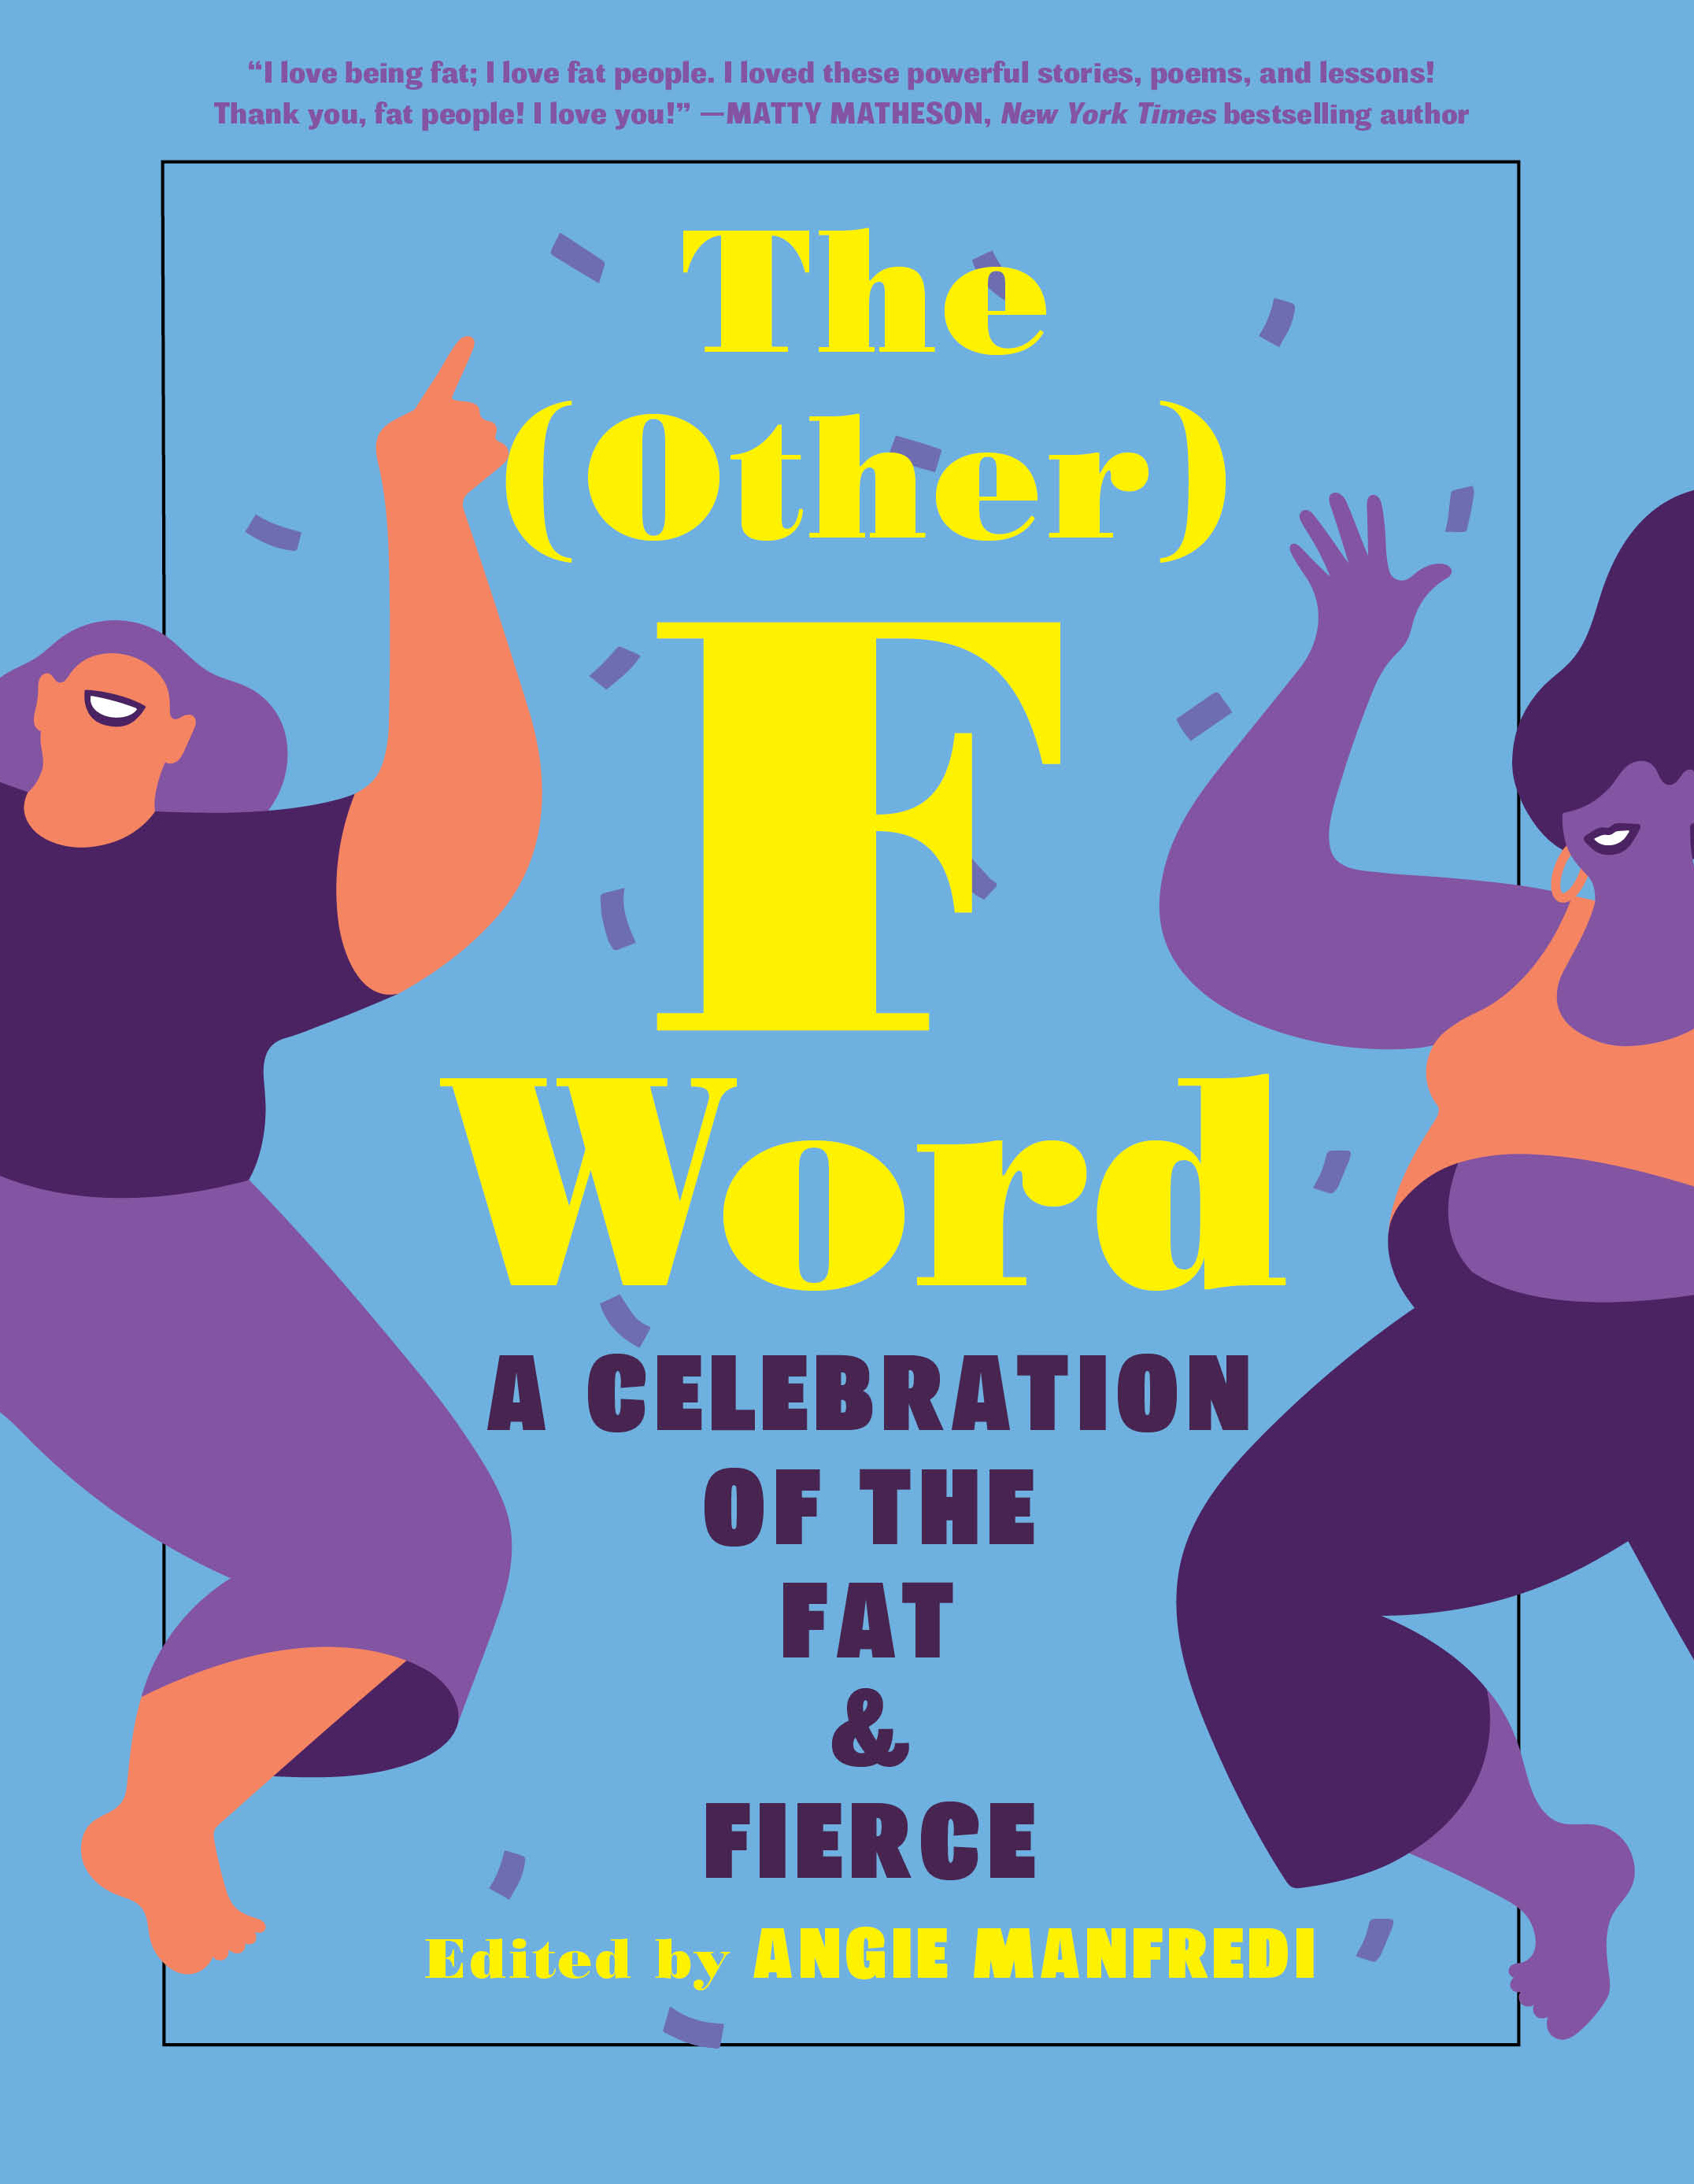 The (Other) F WordAngie Manfredi - This dazzling collection of art, poetry, essays, and fashion tips is meant for people of all sizes who desire to be seen and heard in a culture consumed by a narrow definition of beauty. By combining the talents of renowned fat YA and middle-grade authors, as well as fat influencers and creators, The (Other) F Word offers teen readers and activists of all ages a tool for navigating our world with confidence and courage.Read more here »